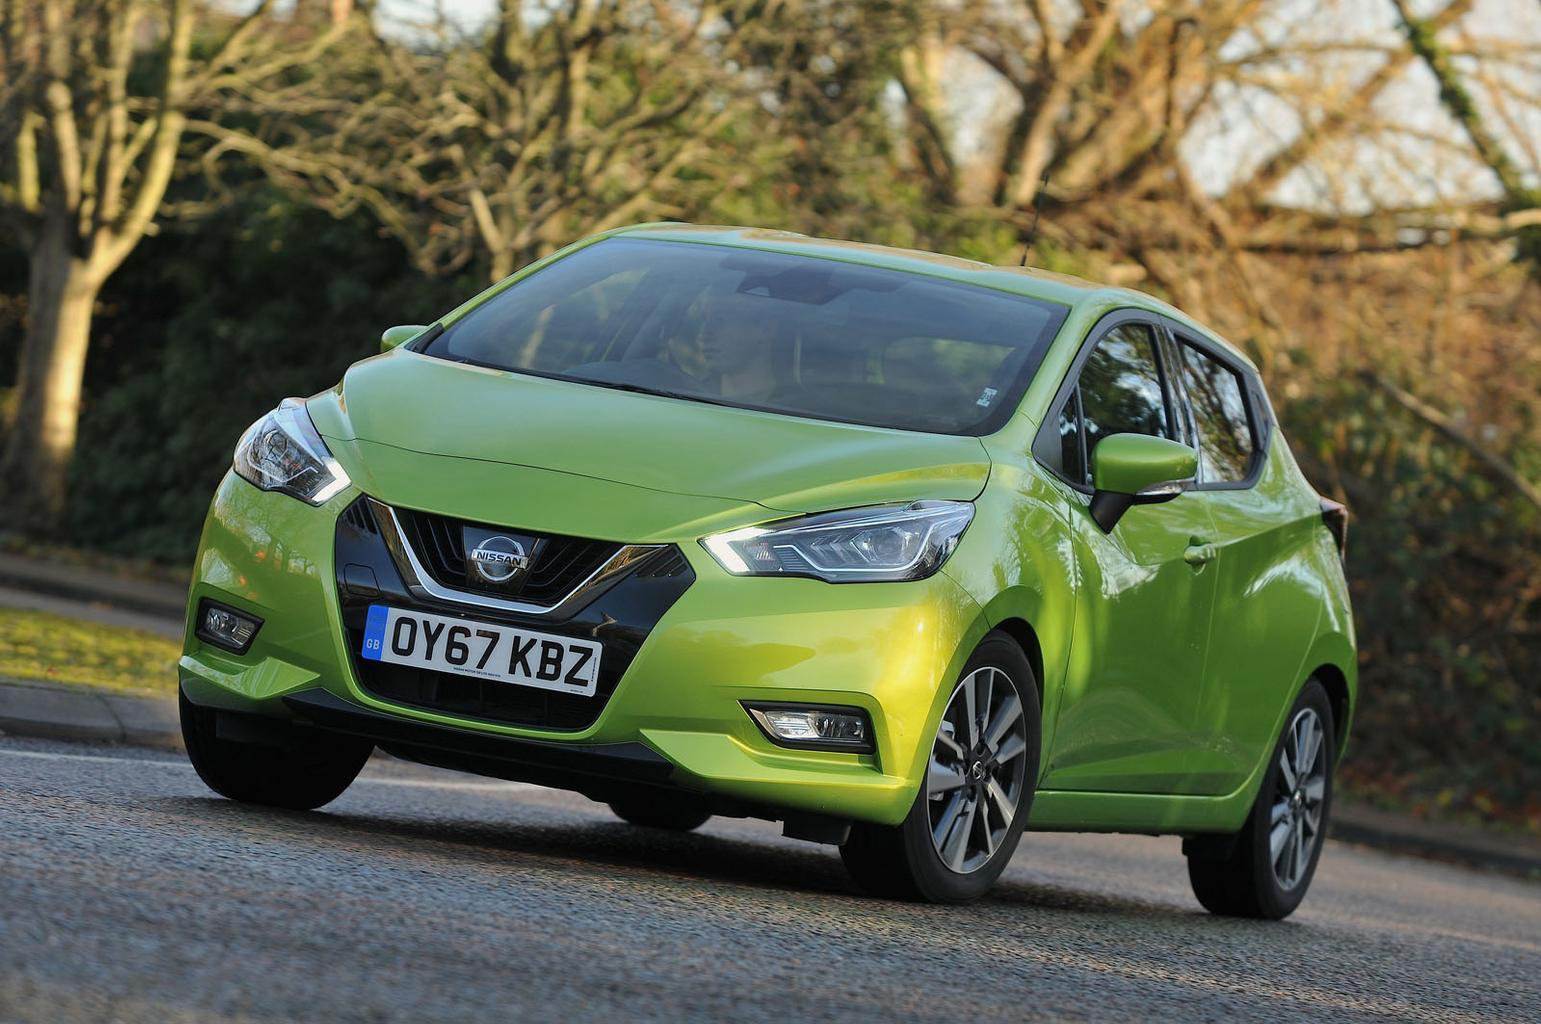 2017 Nissan Micra 1.0 71 review - price, specs and release date